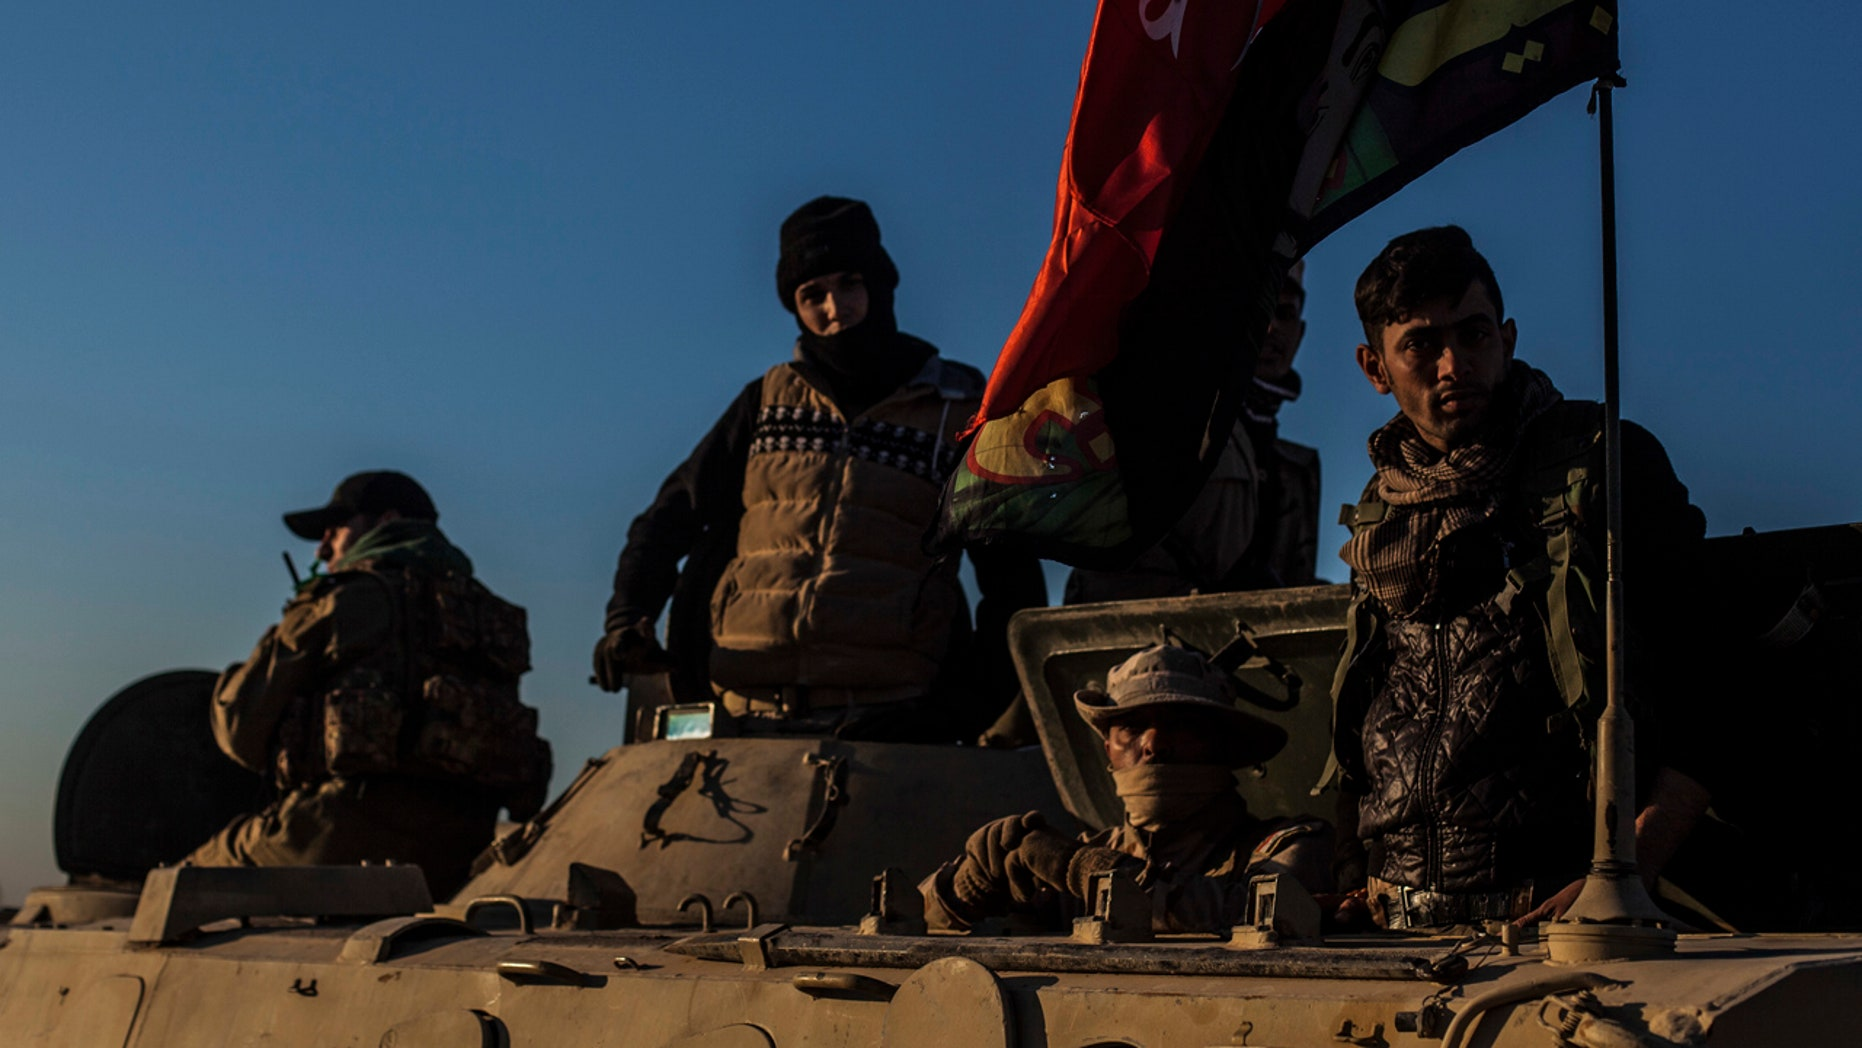 Iraqi Army soldiers are seen atop an armored vehicle while waiting to go to the frontline at the outskirts of Mosul in Al Intisa district, Mosul, Iraq, Tuesday, Dec. 6, 2016.